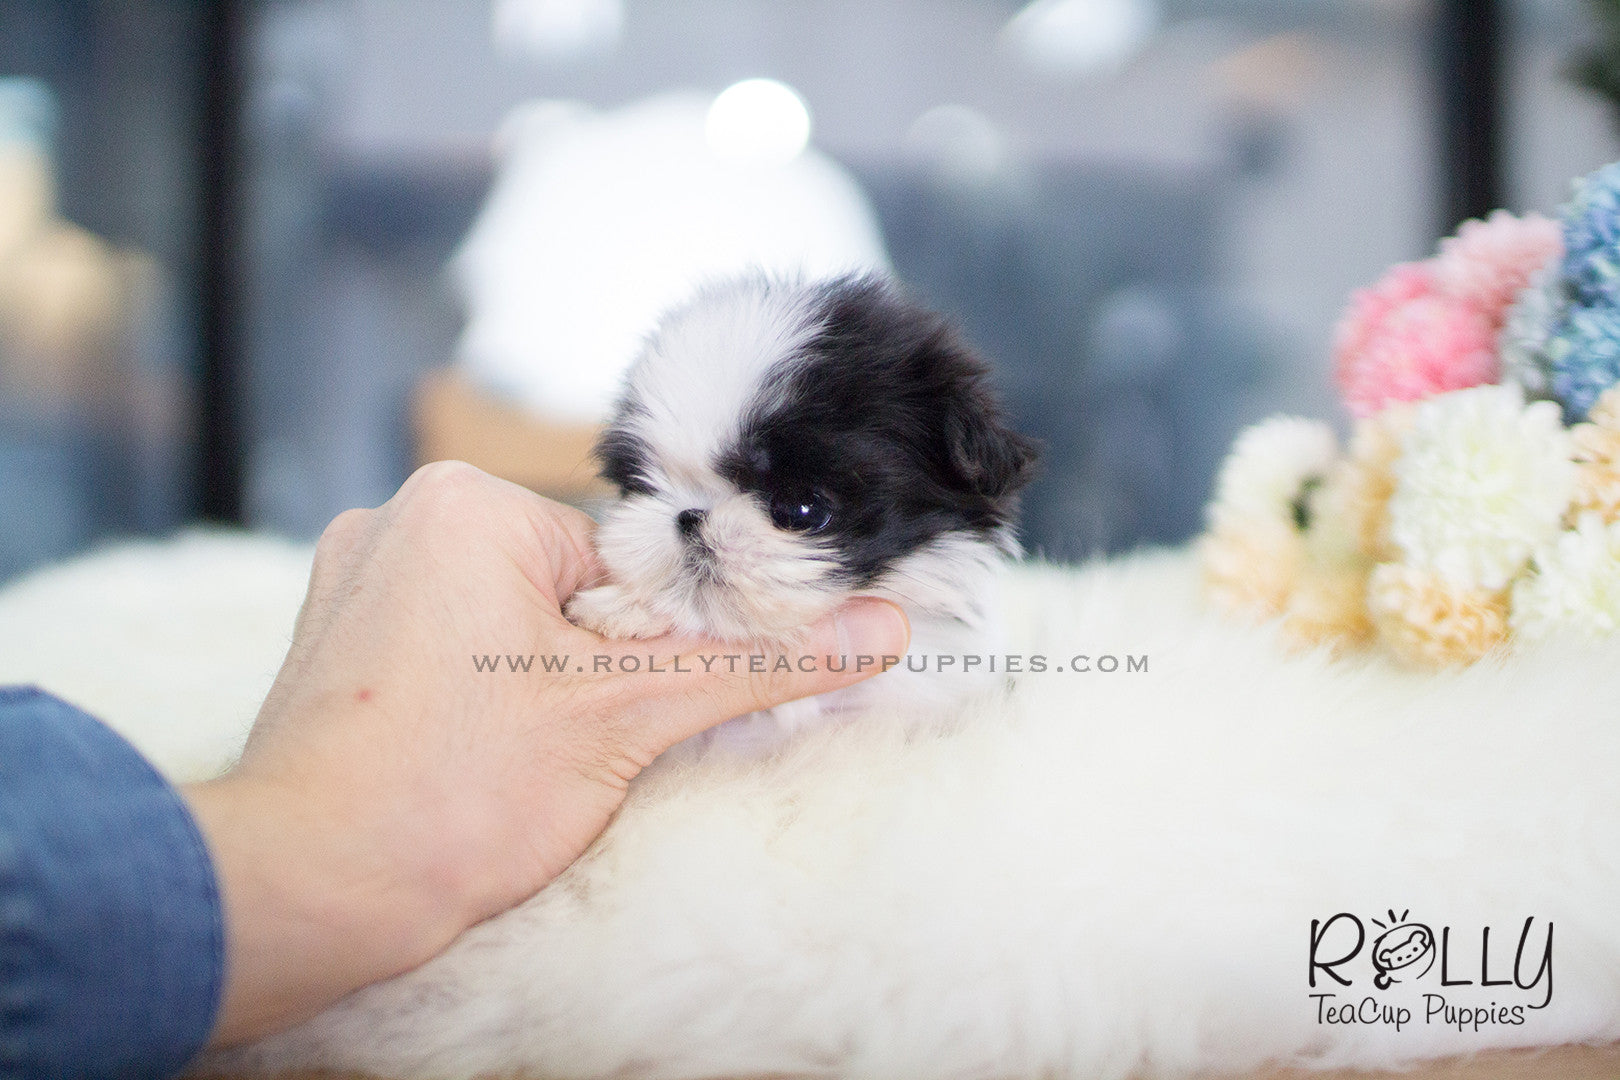 Oreo Shih Tzu M Rolly Teacup Puppies